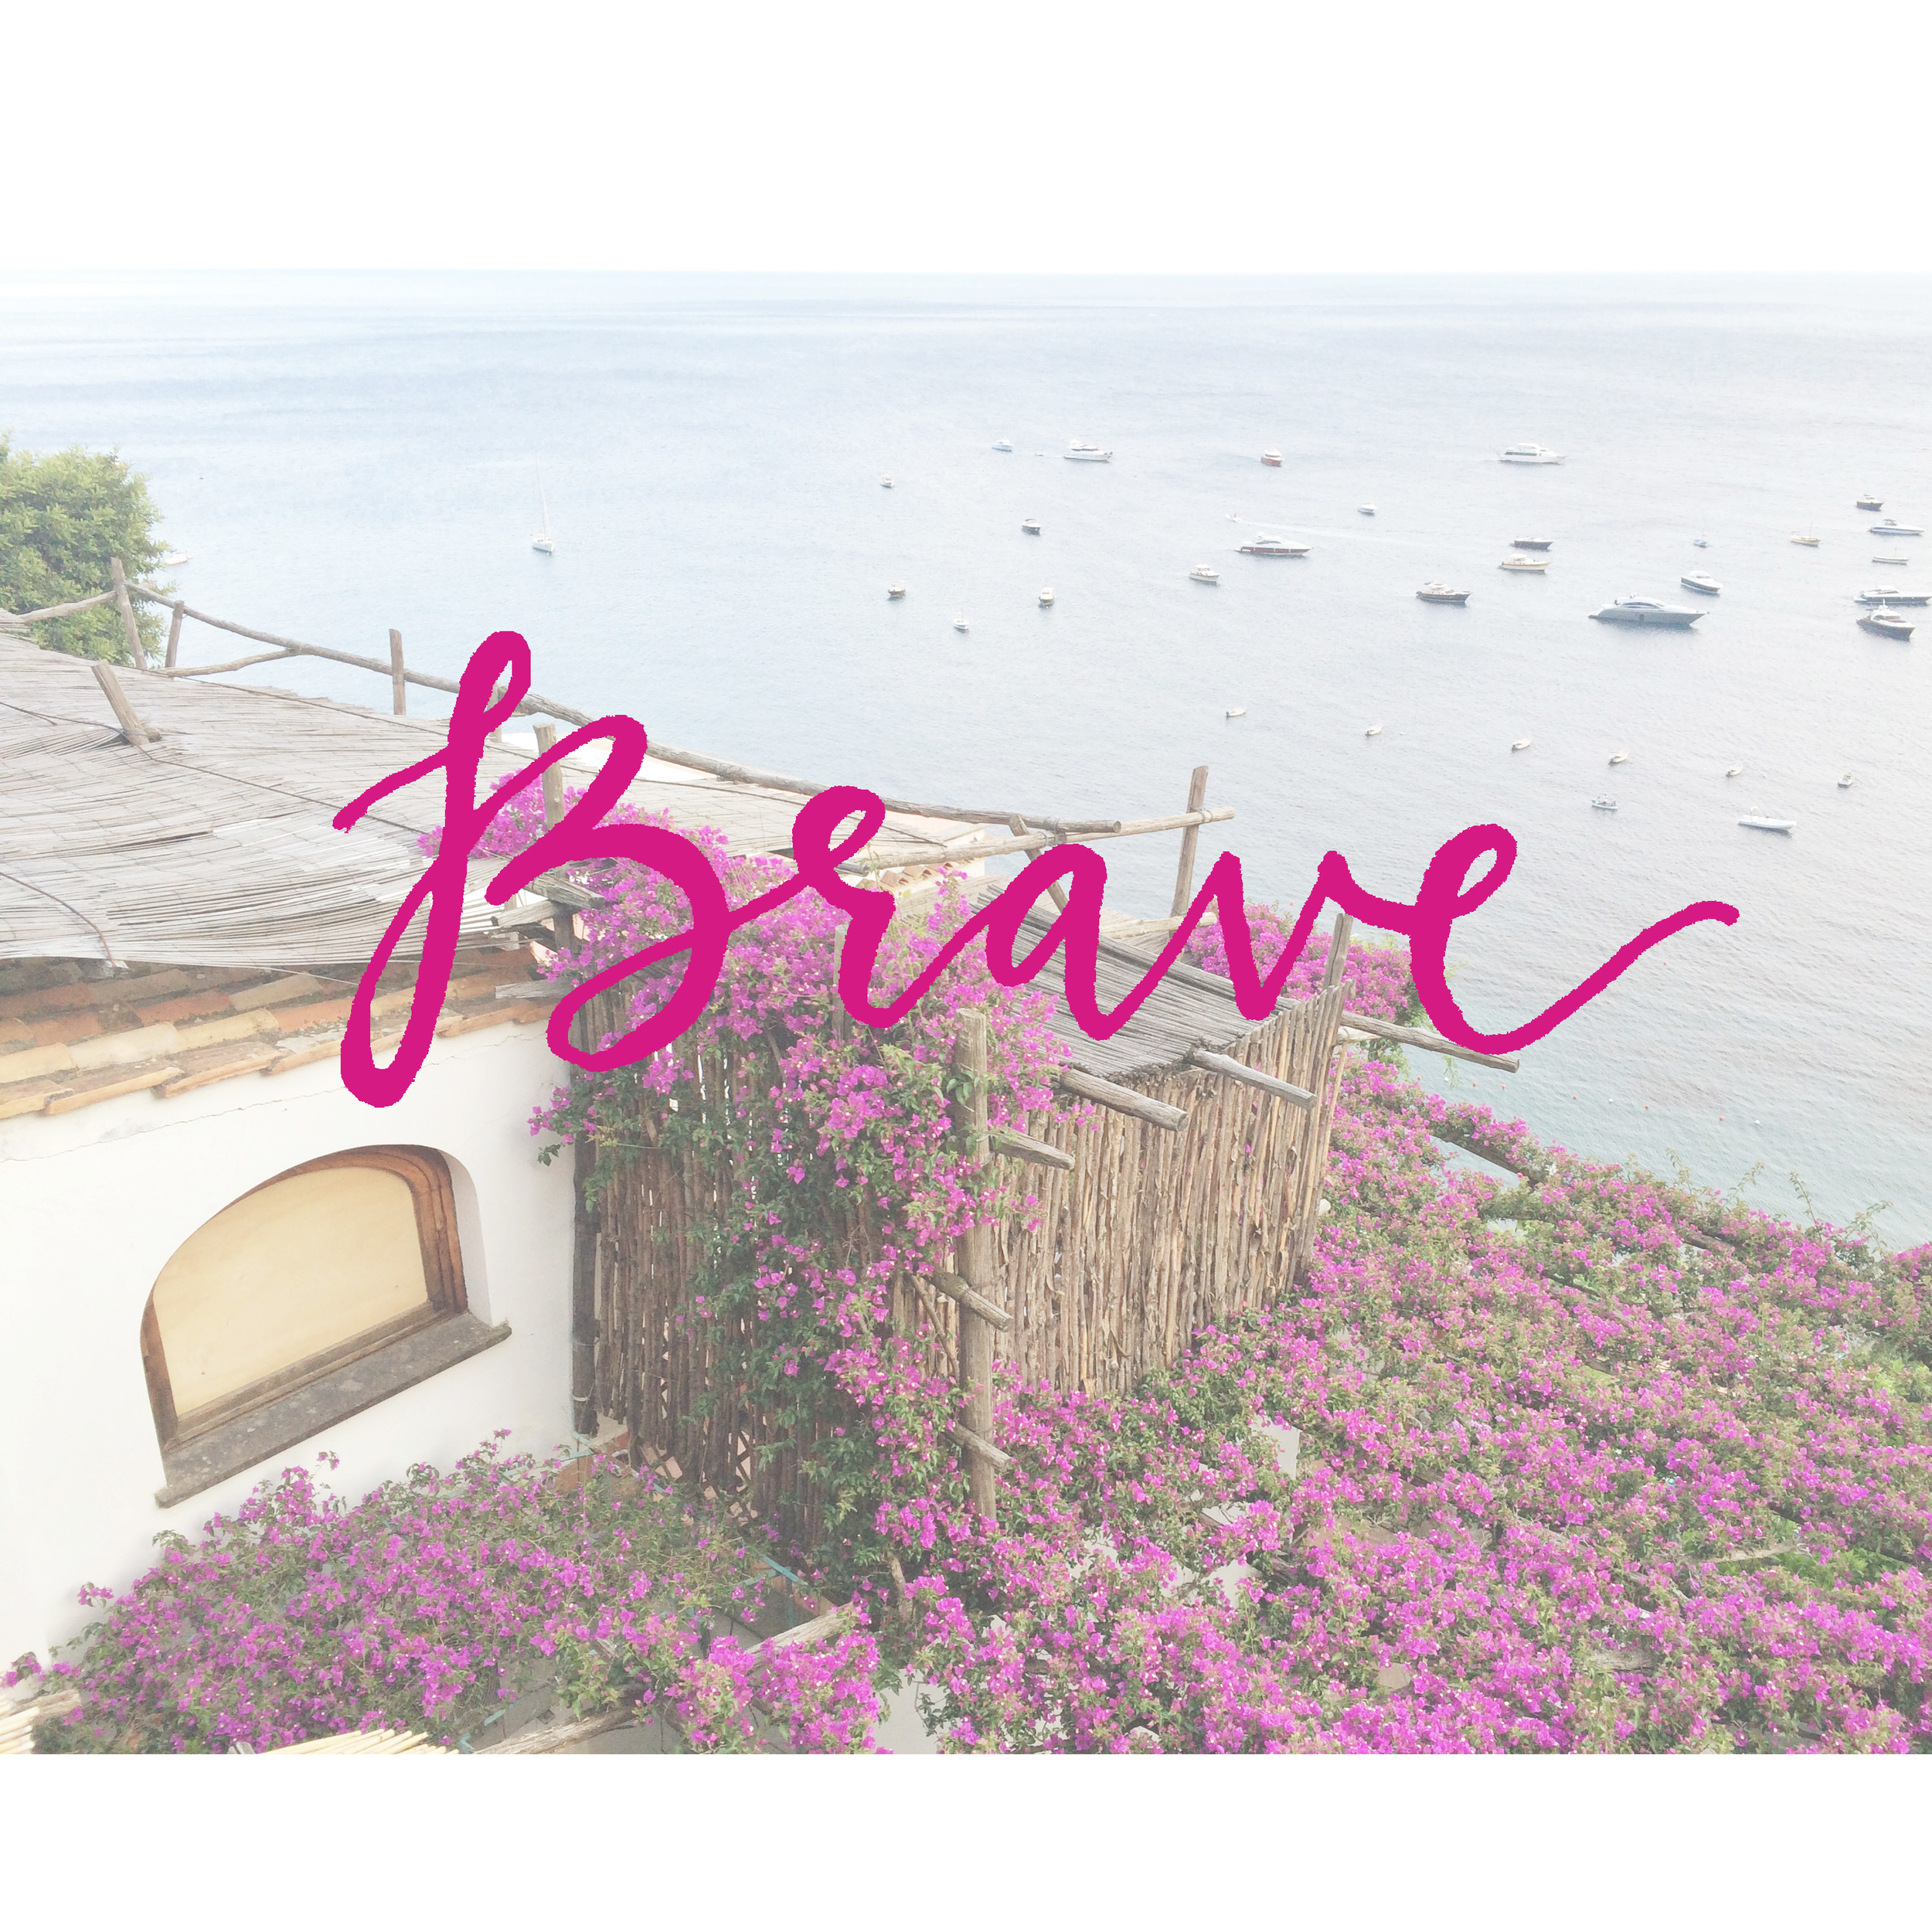 The  one word challenge encourages you to forget New Year's Resolutions and just choose one word. I've chosen Brave as my word for 2016!